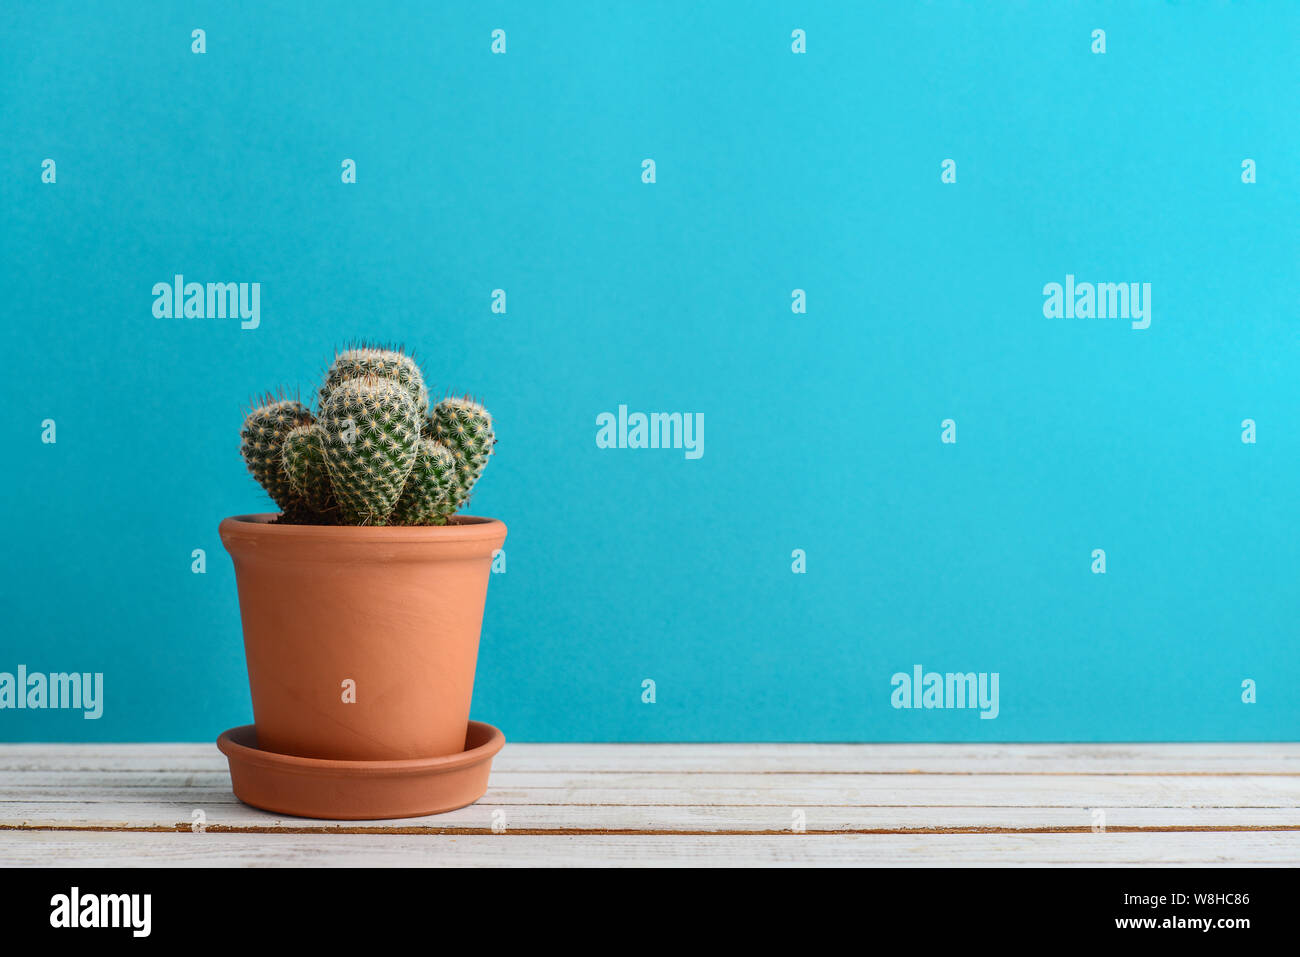 Cactus Plant In Flower Pot Potted Cactus House Plants On Blue Background Stock Photo Alamy